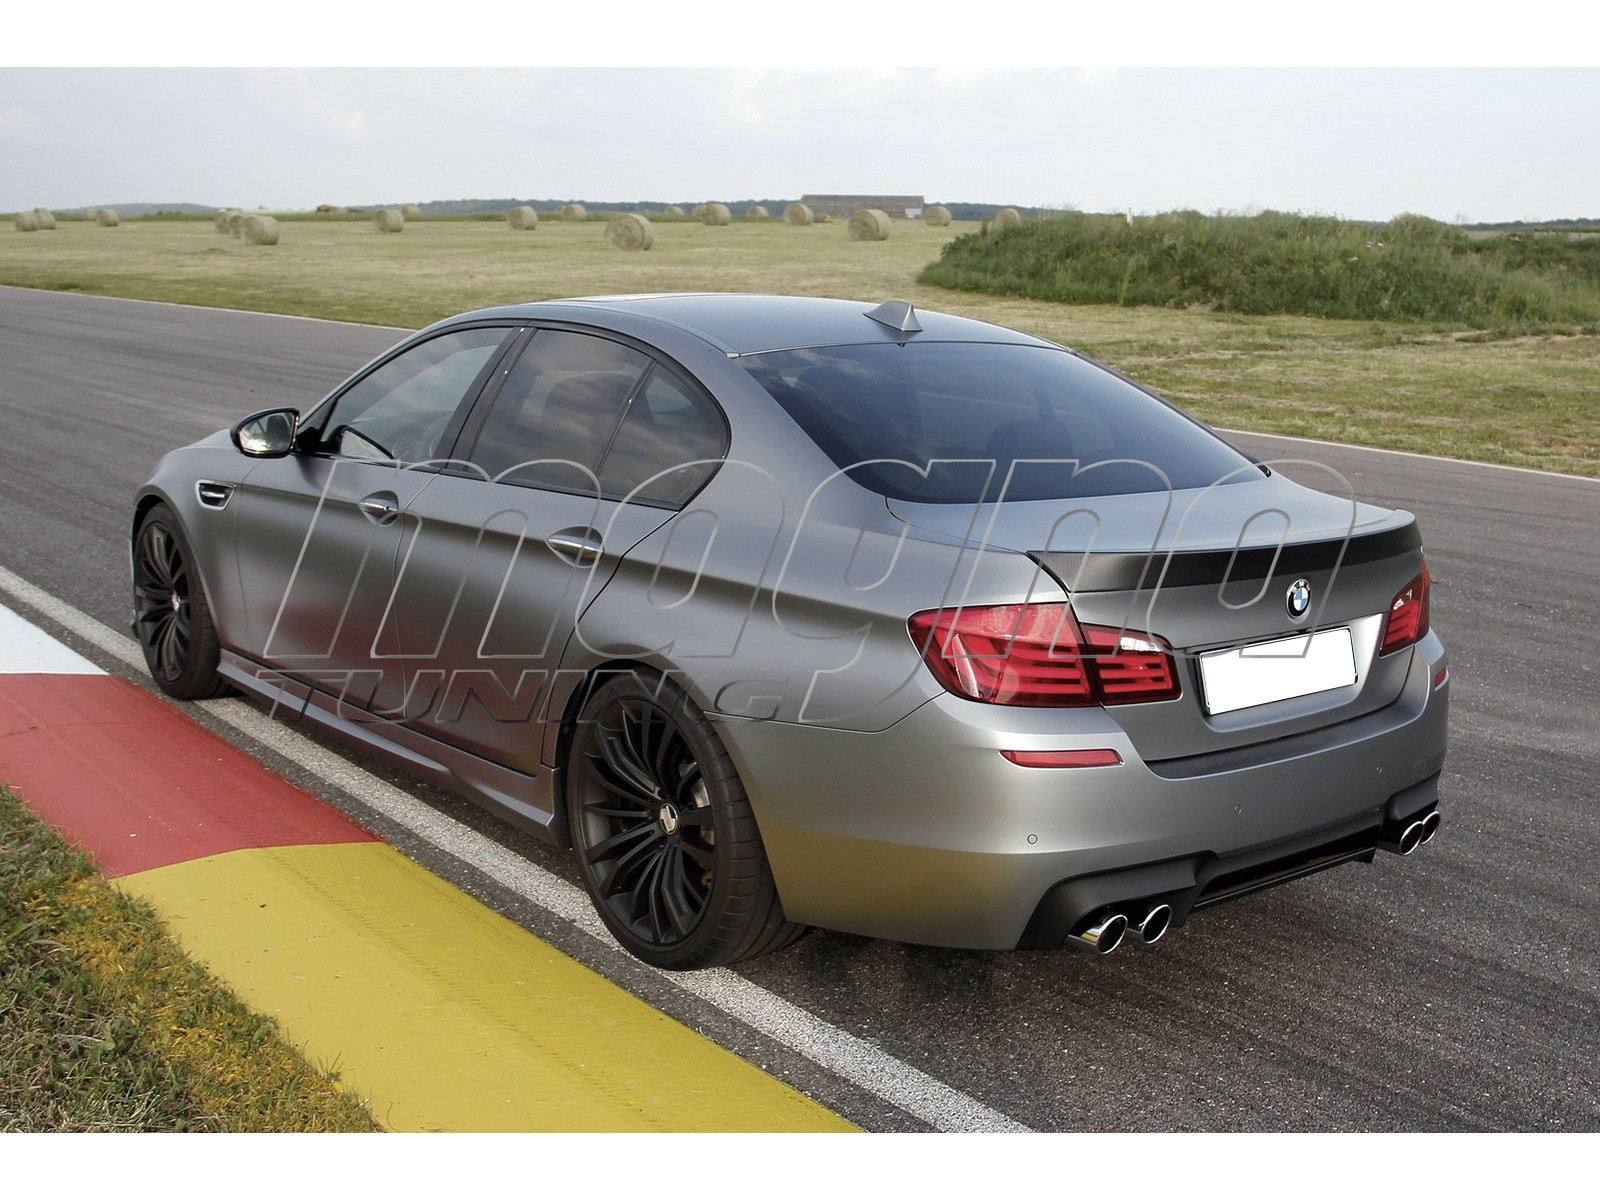 BMW F10 Jade Rear Wing